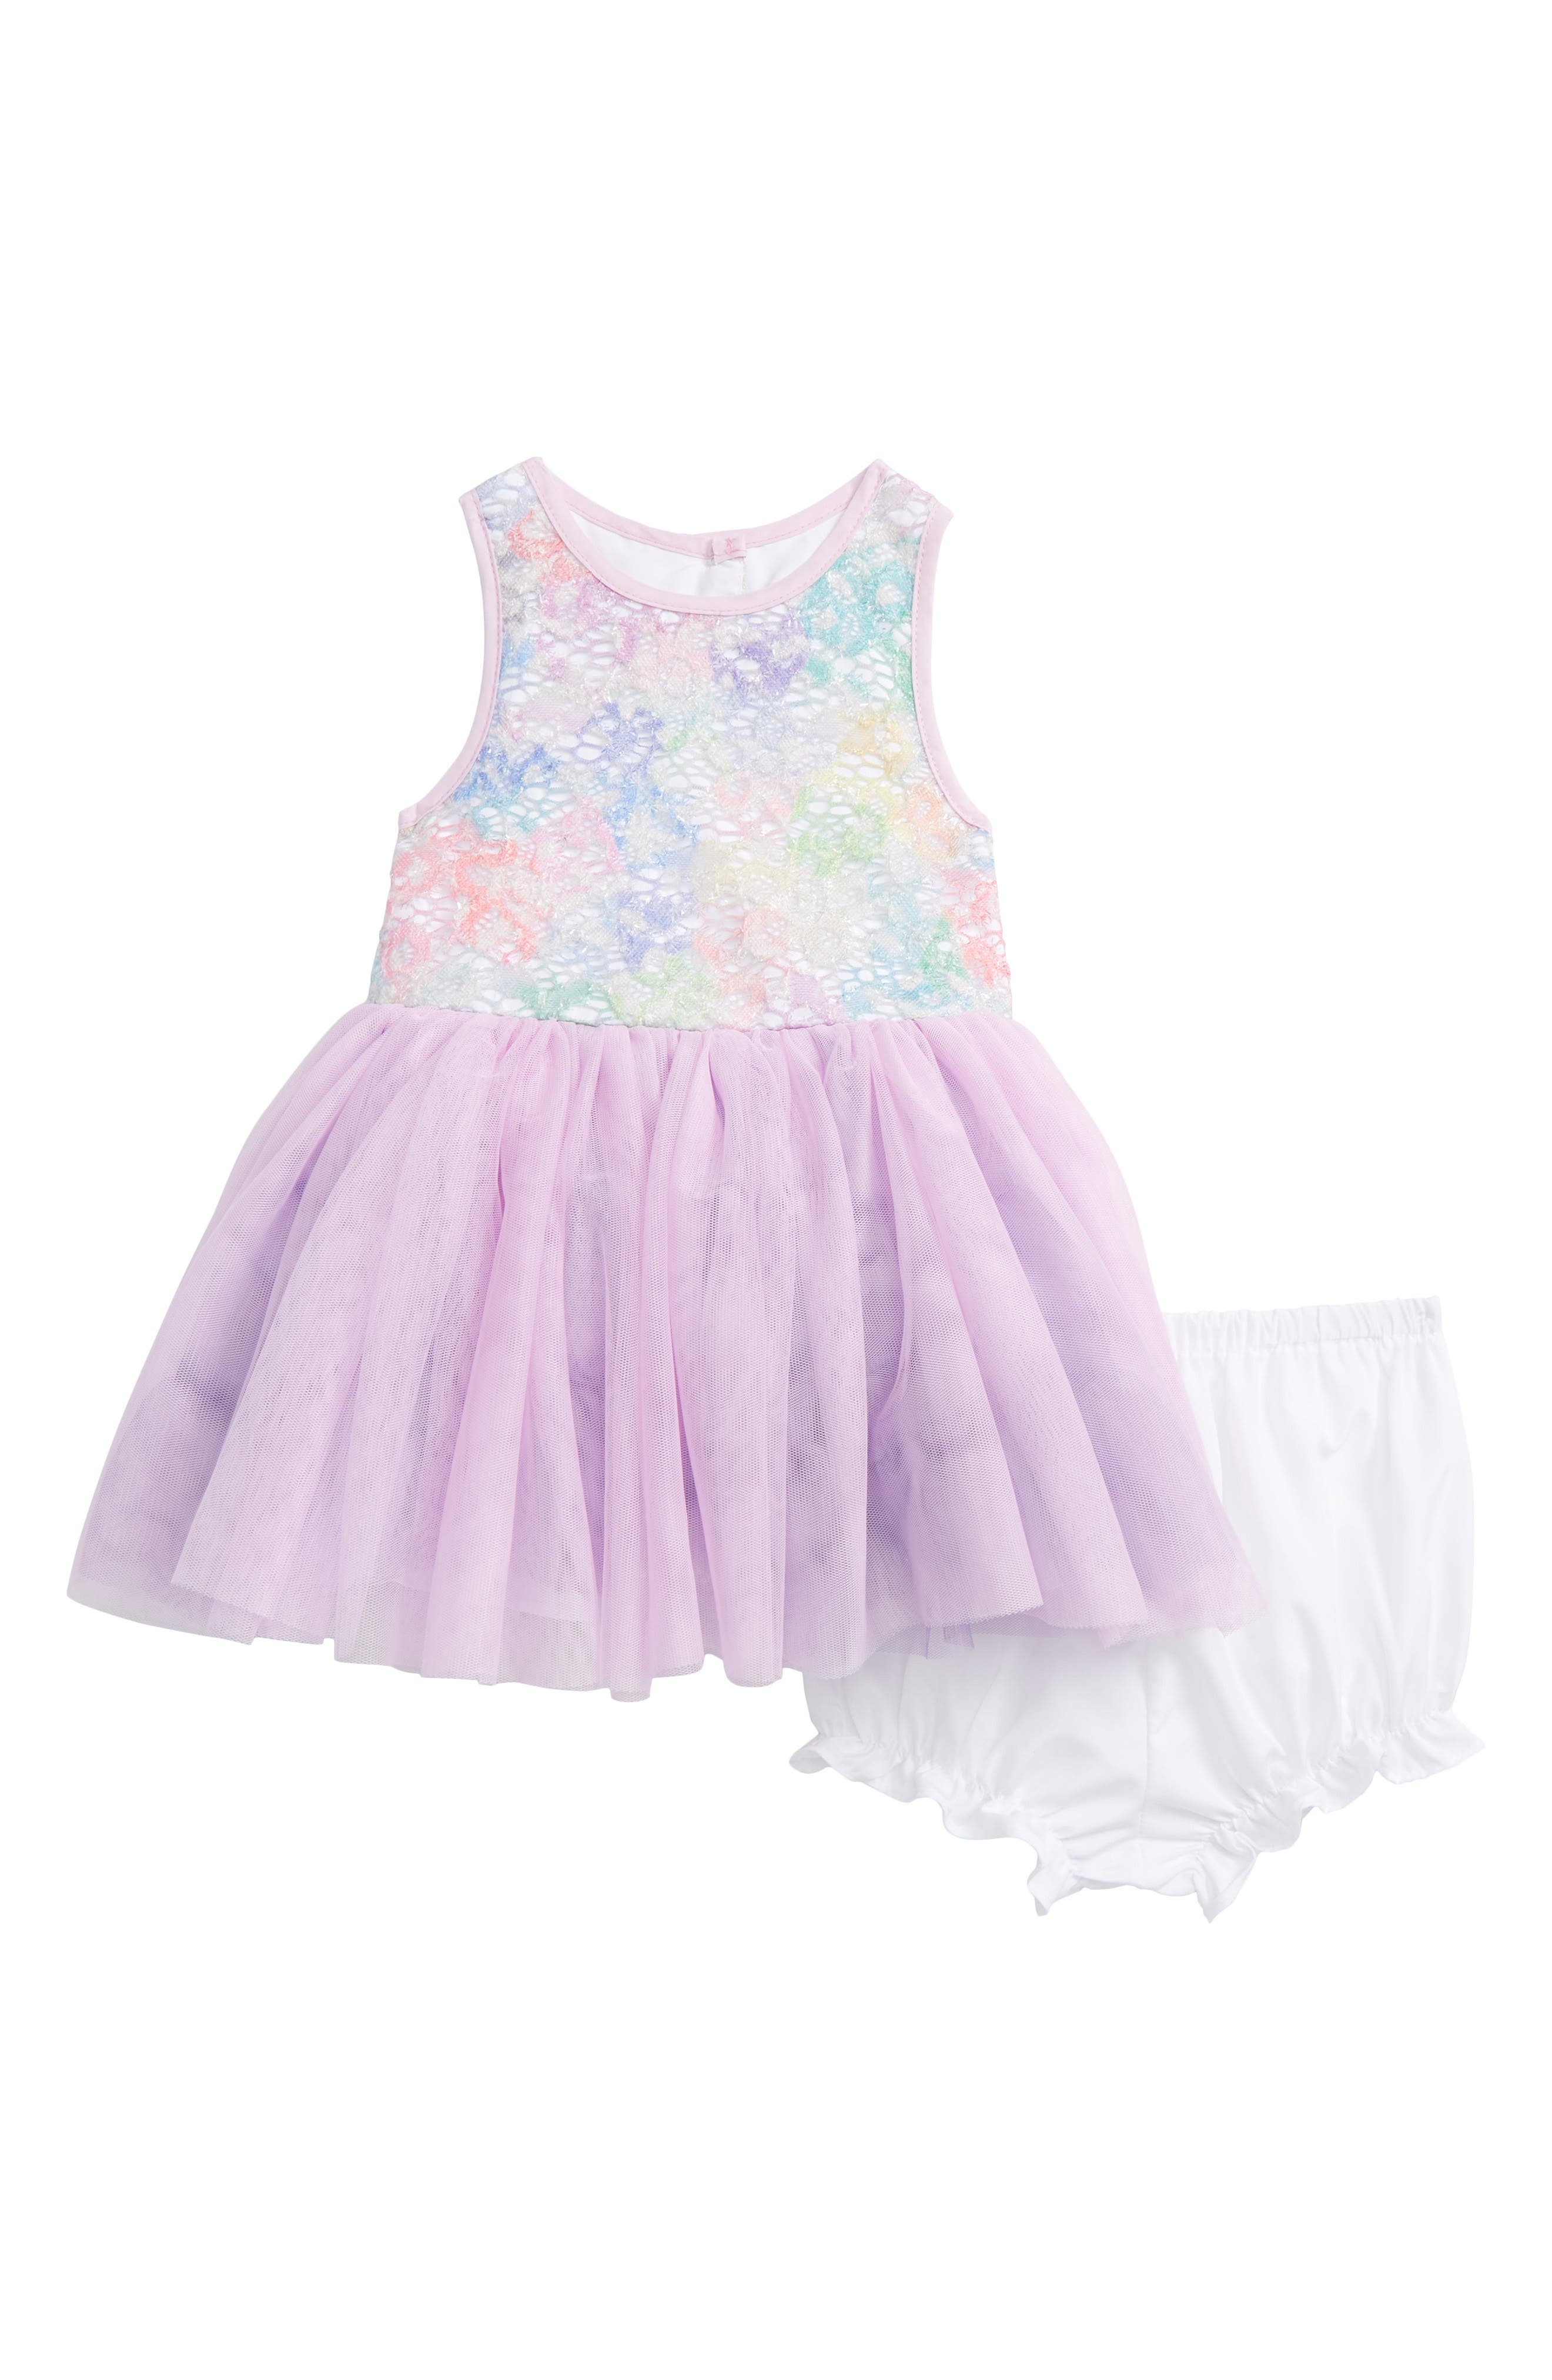 Pippa & Julie Rainbow Tutu Dress (Baby Girls)